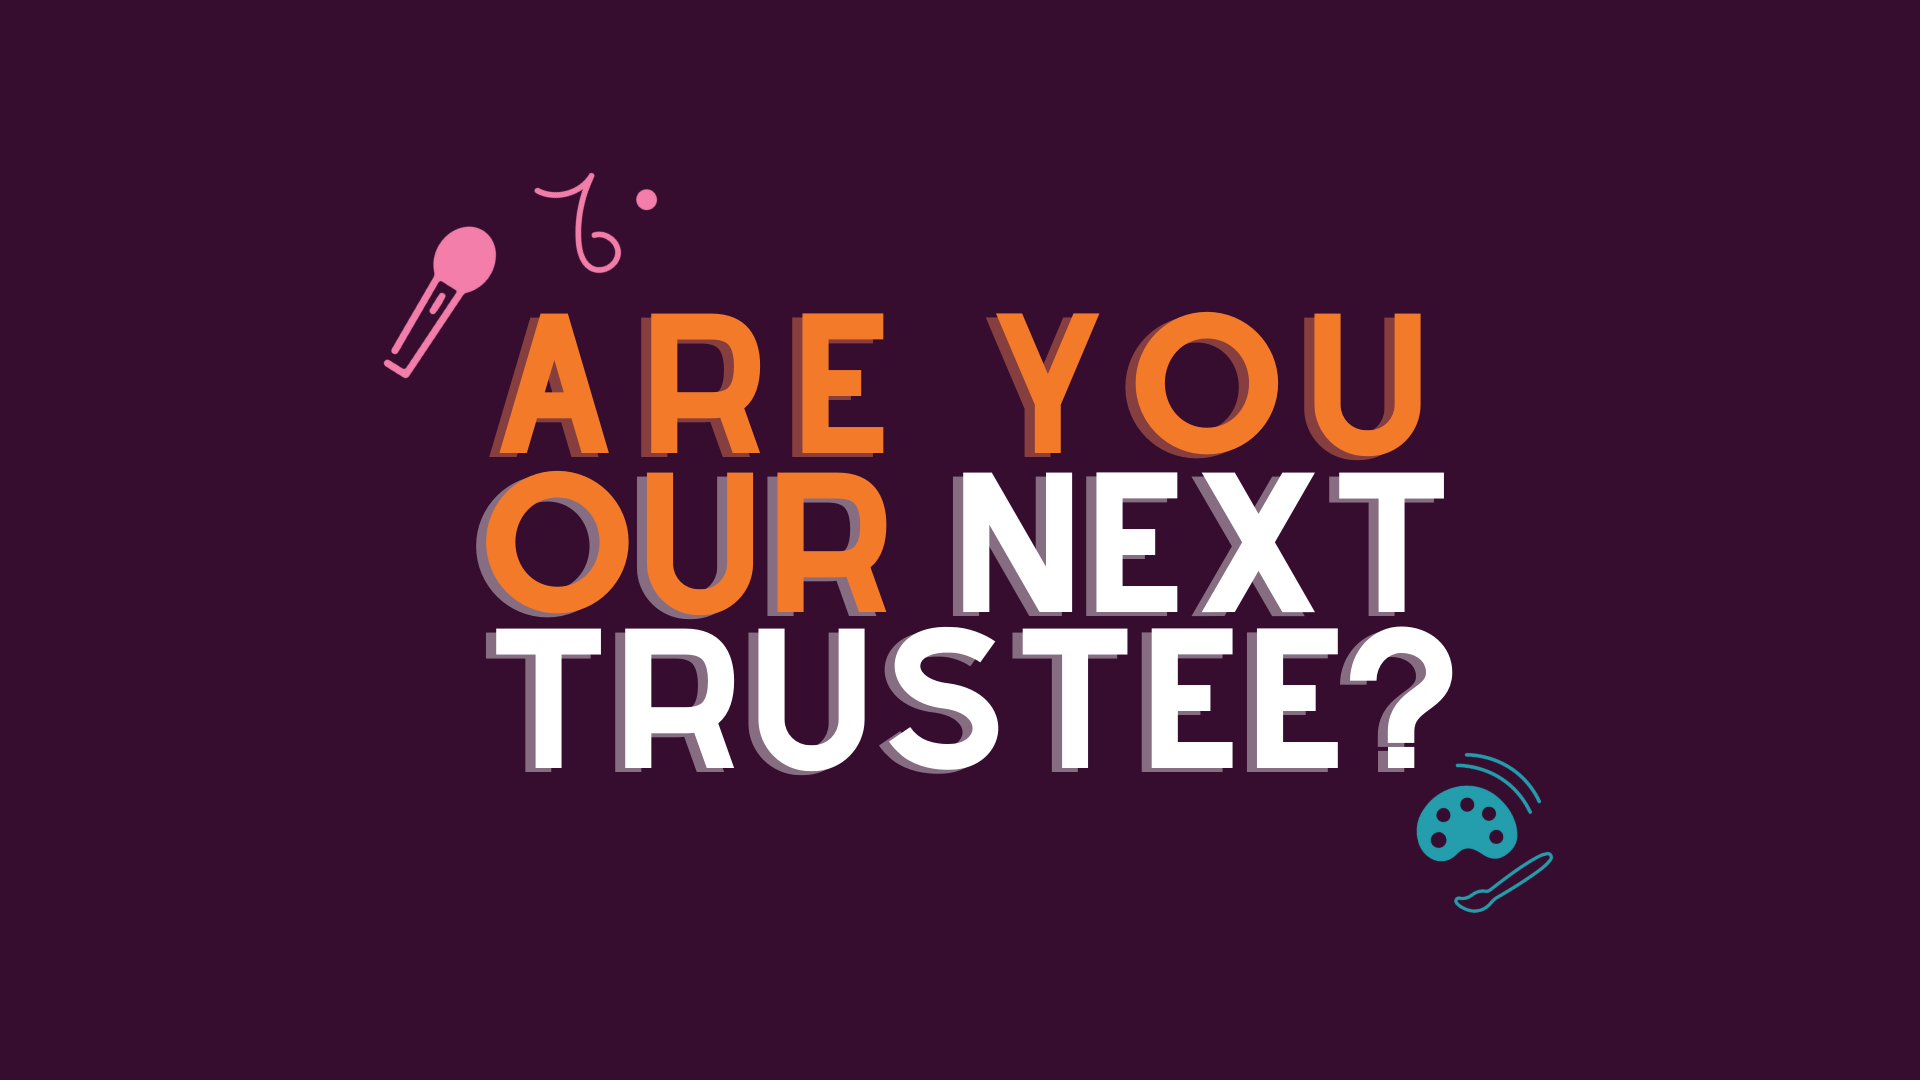 We're recruiting new trustees!